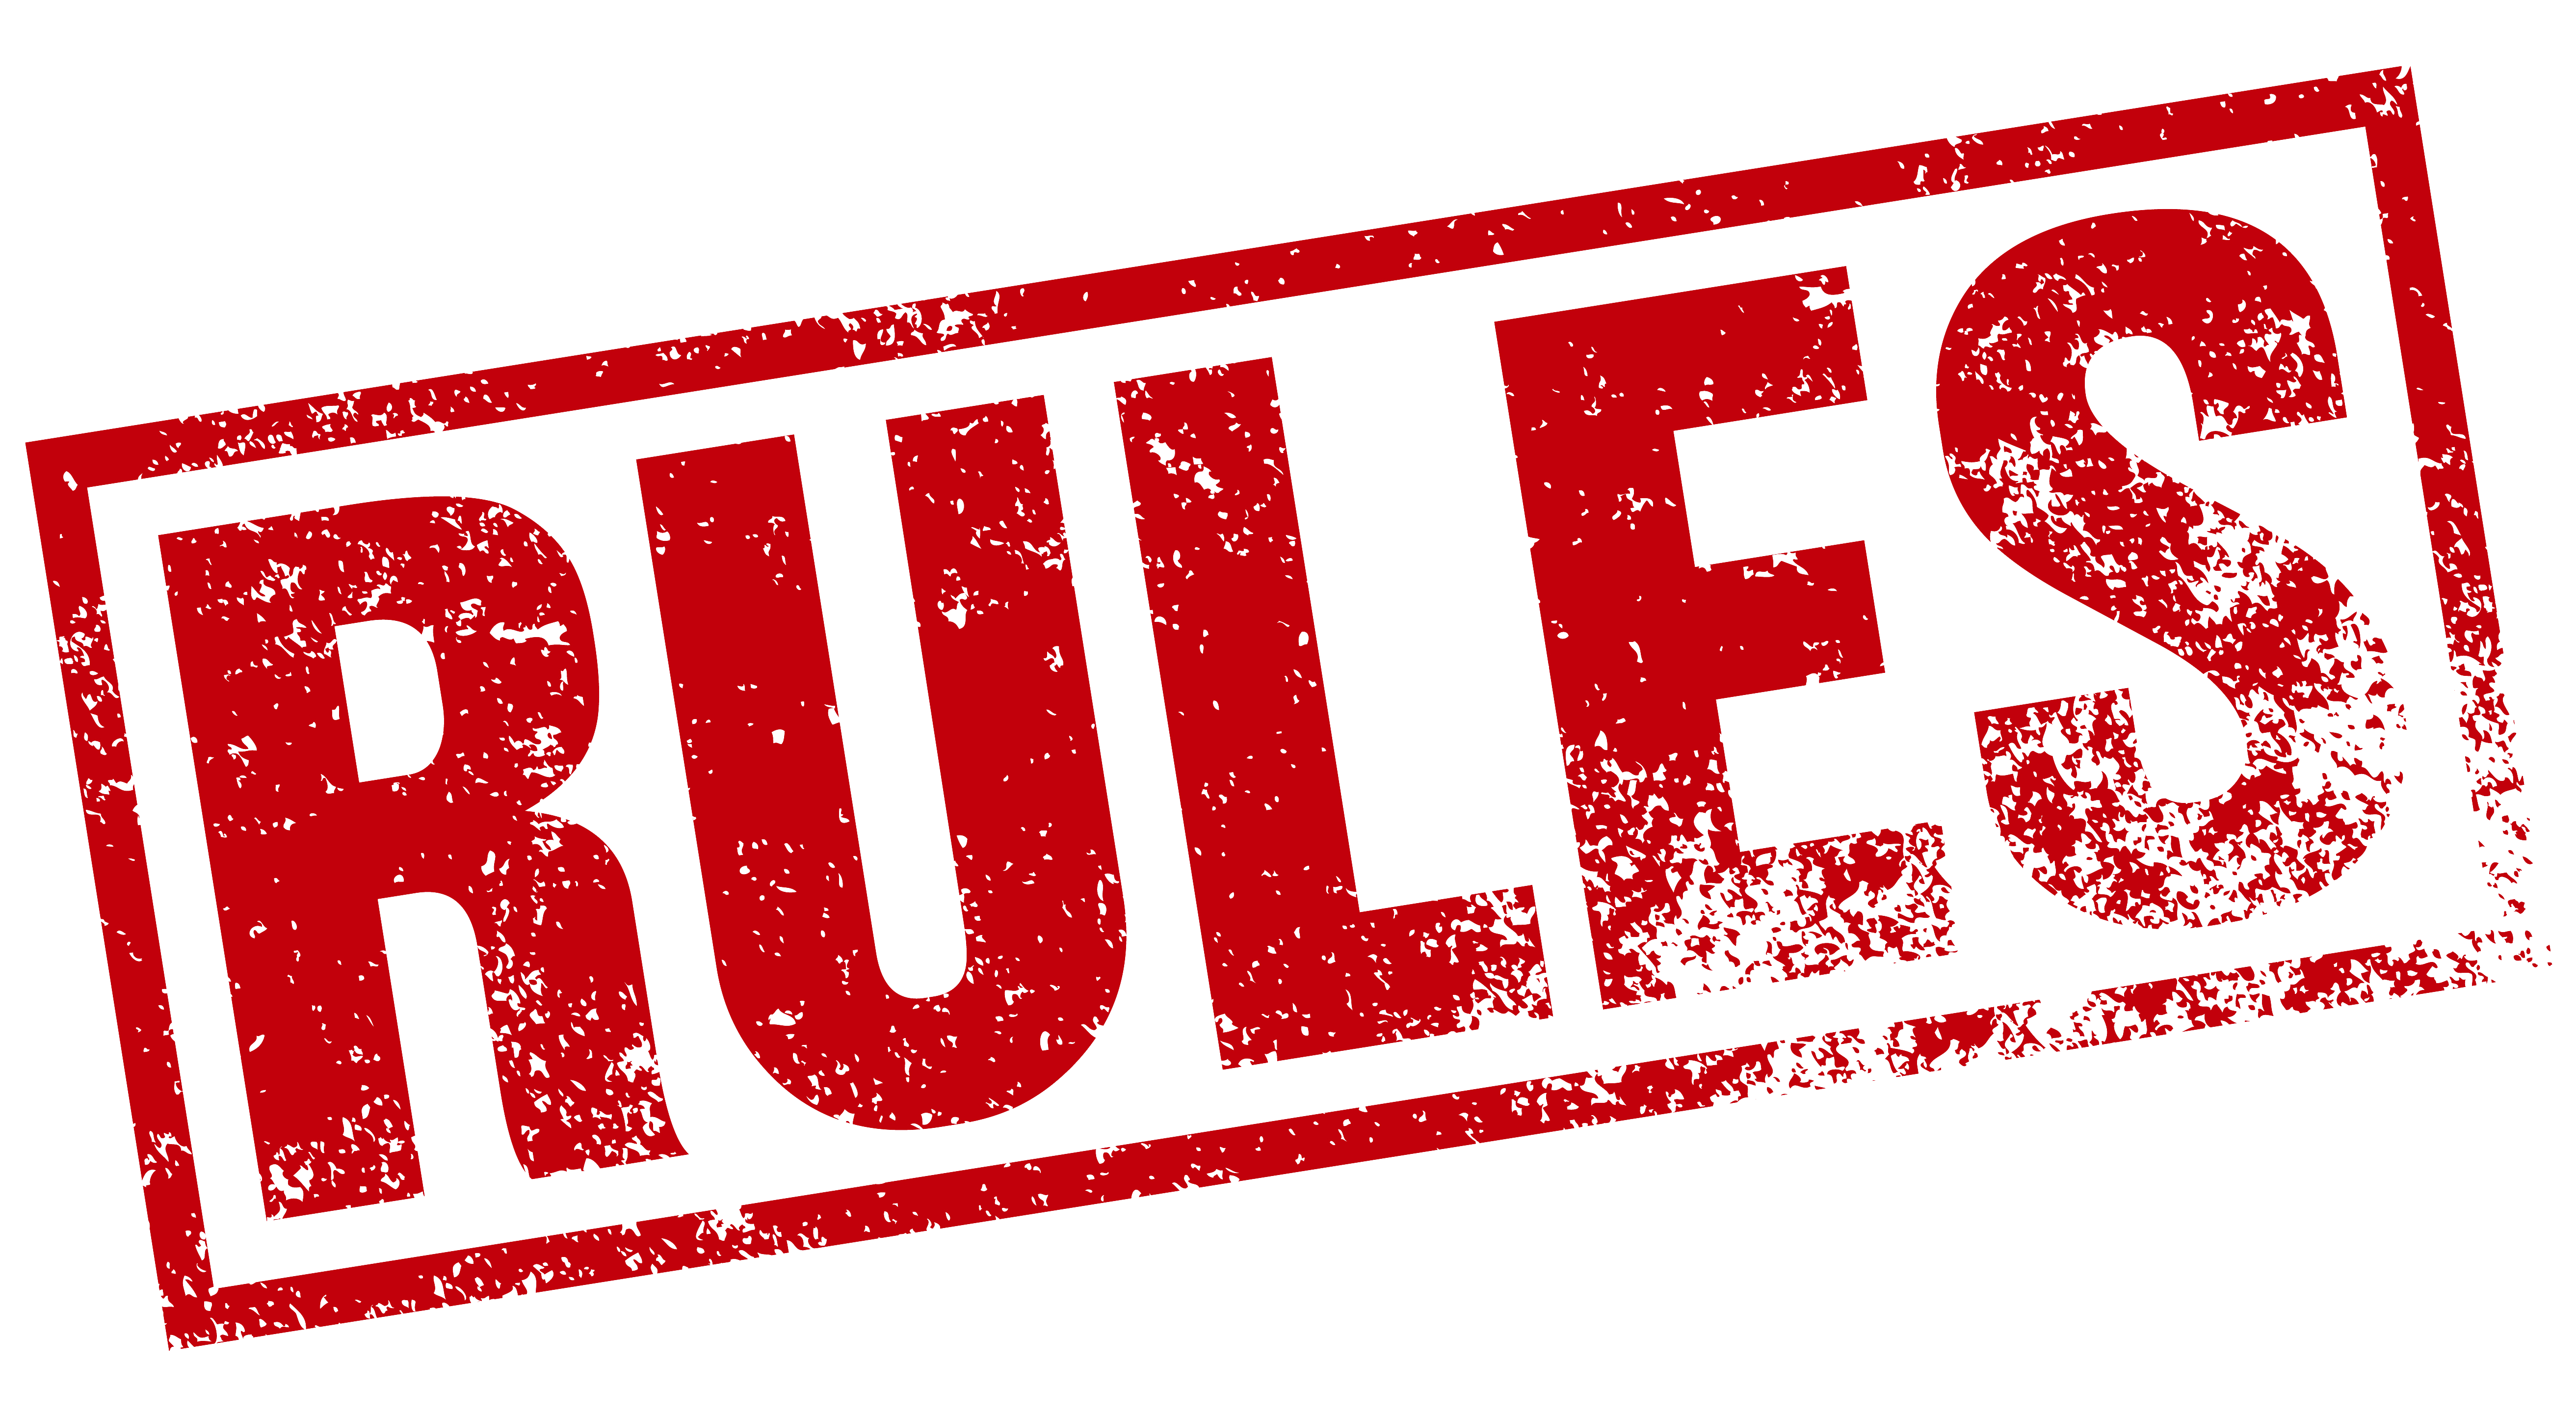 Rules transparent. Flagswipe